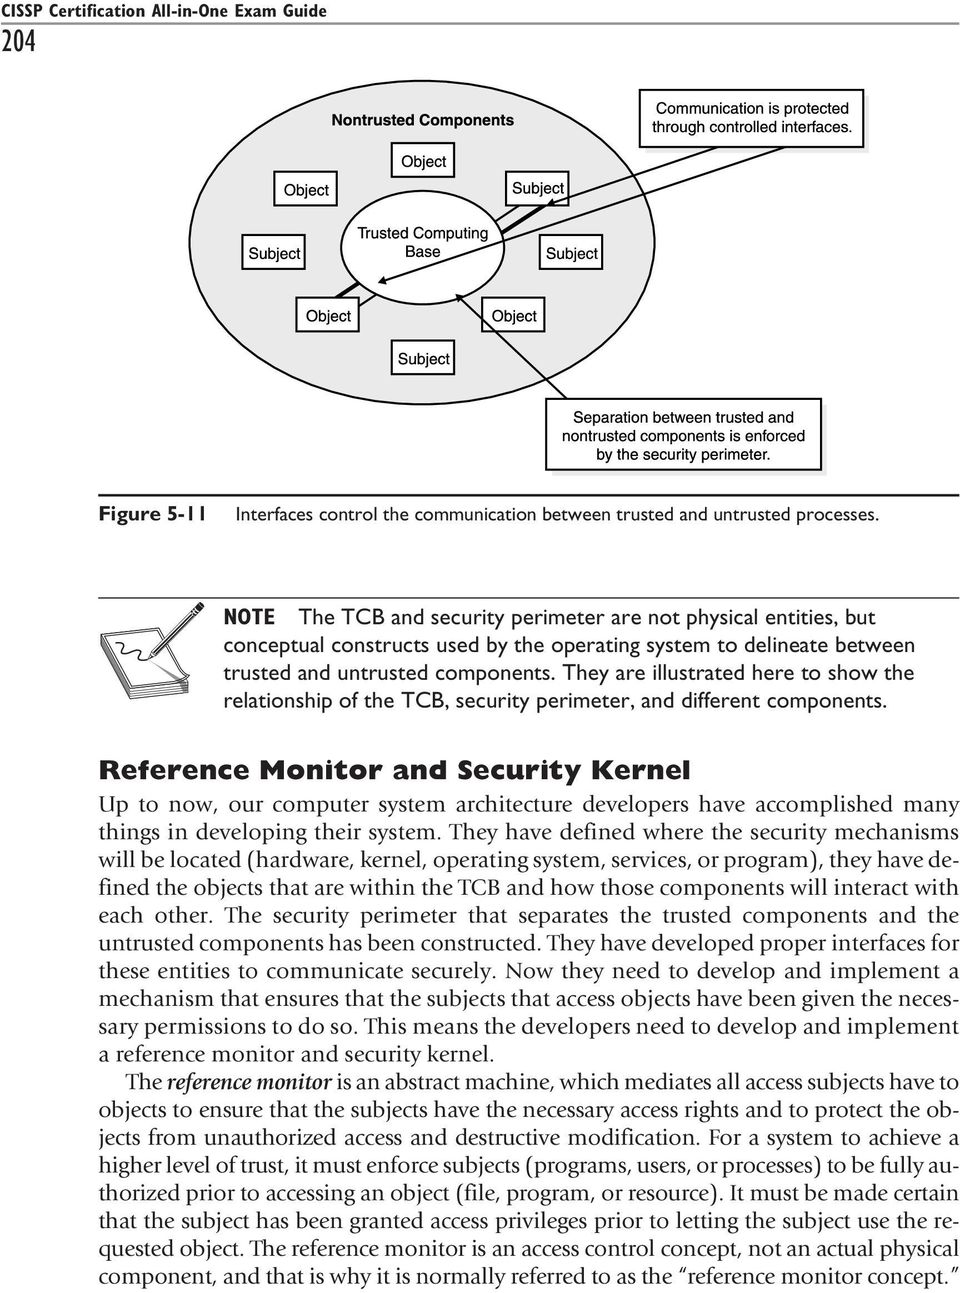 They are illustrated here to show the relationship of the TCB, security perimeter, and different components.